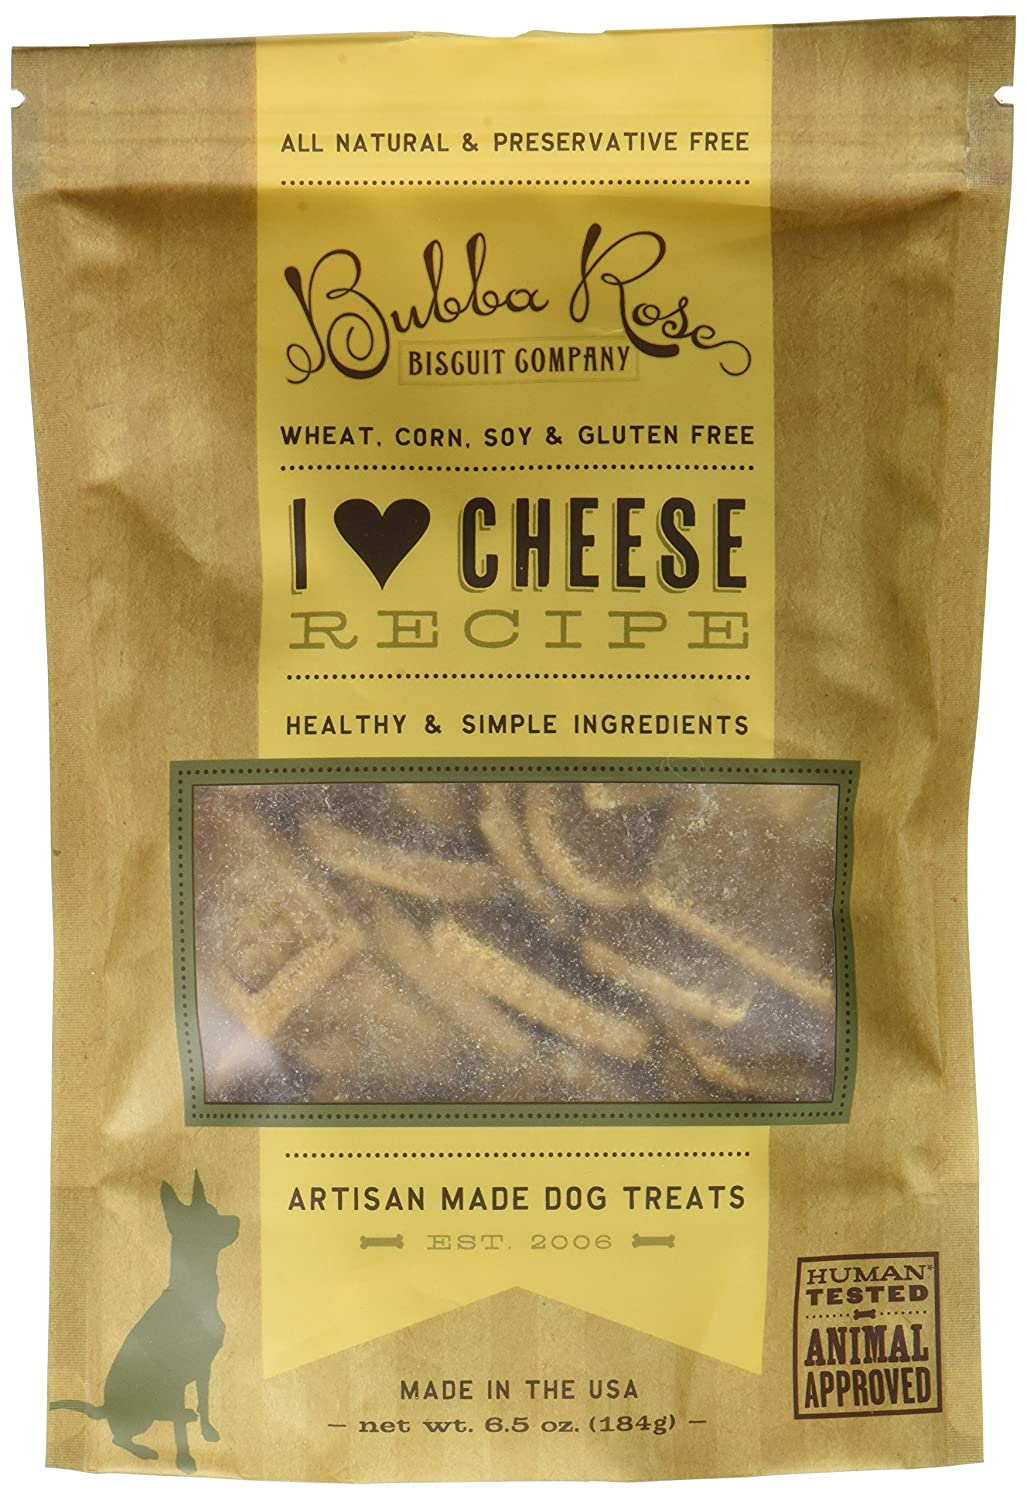 Bubba pink Biscuit smchee I Heart Cheese Dog Treats, 6.5 oz